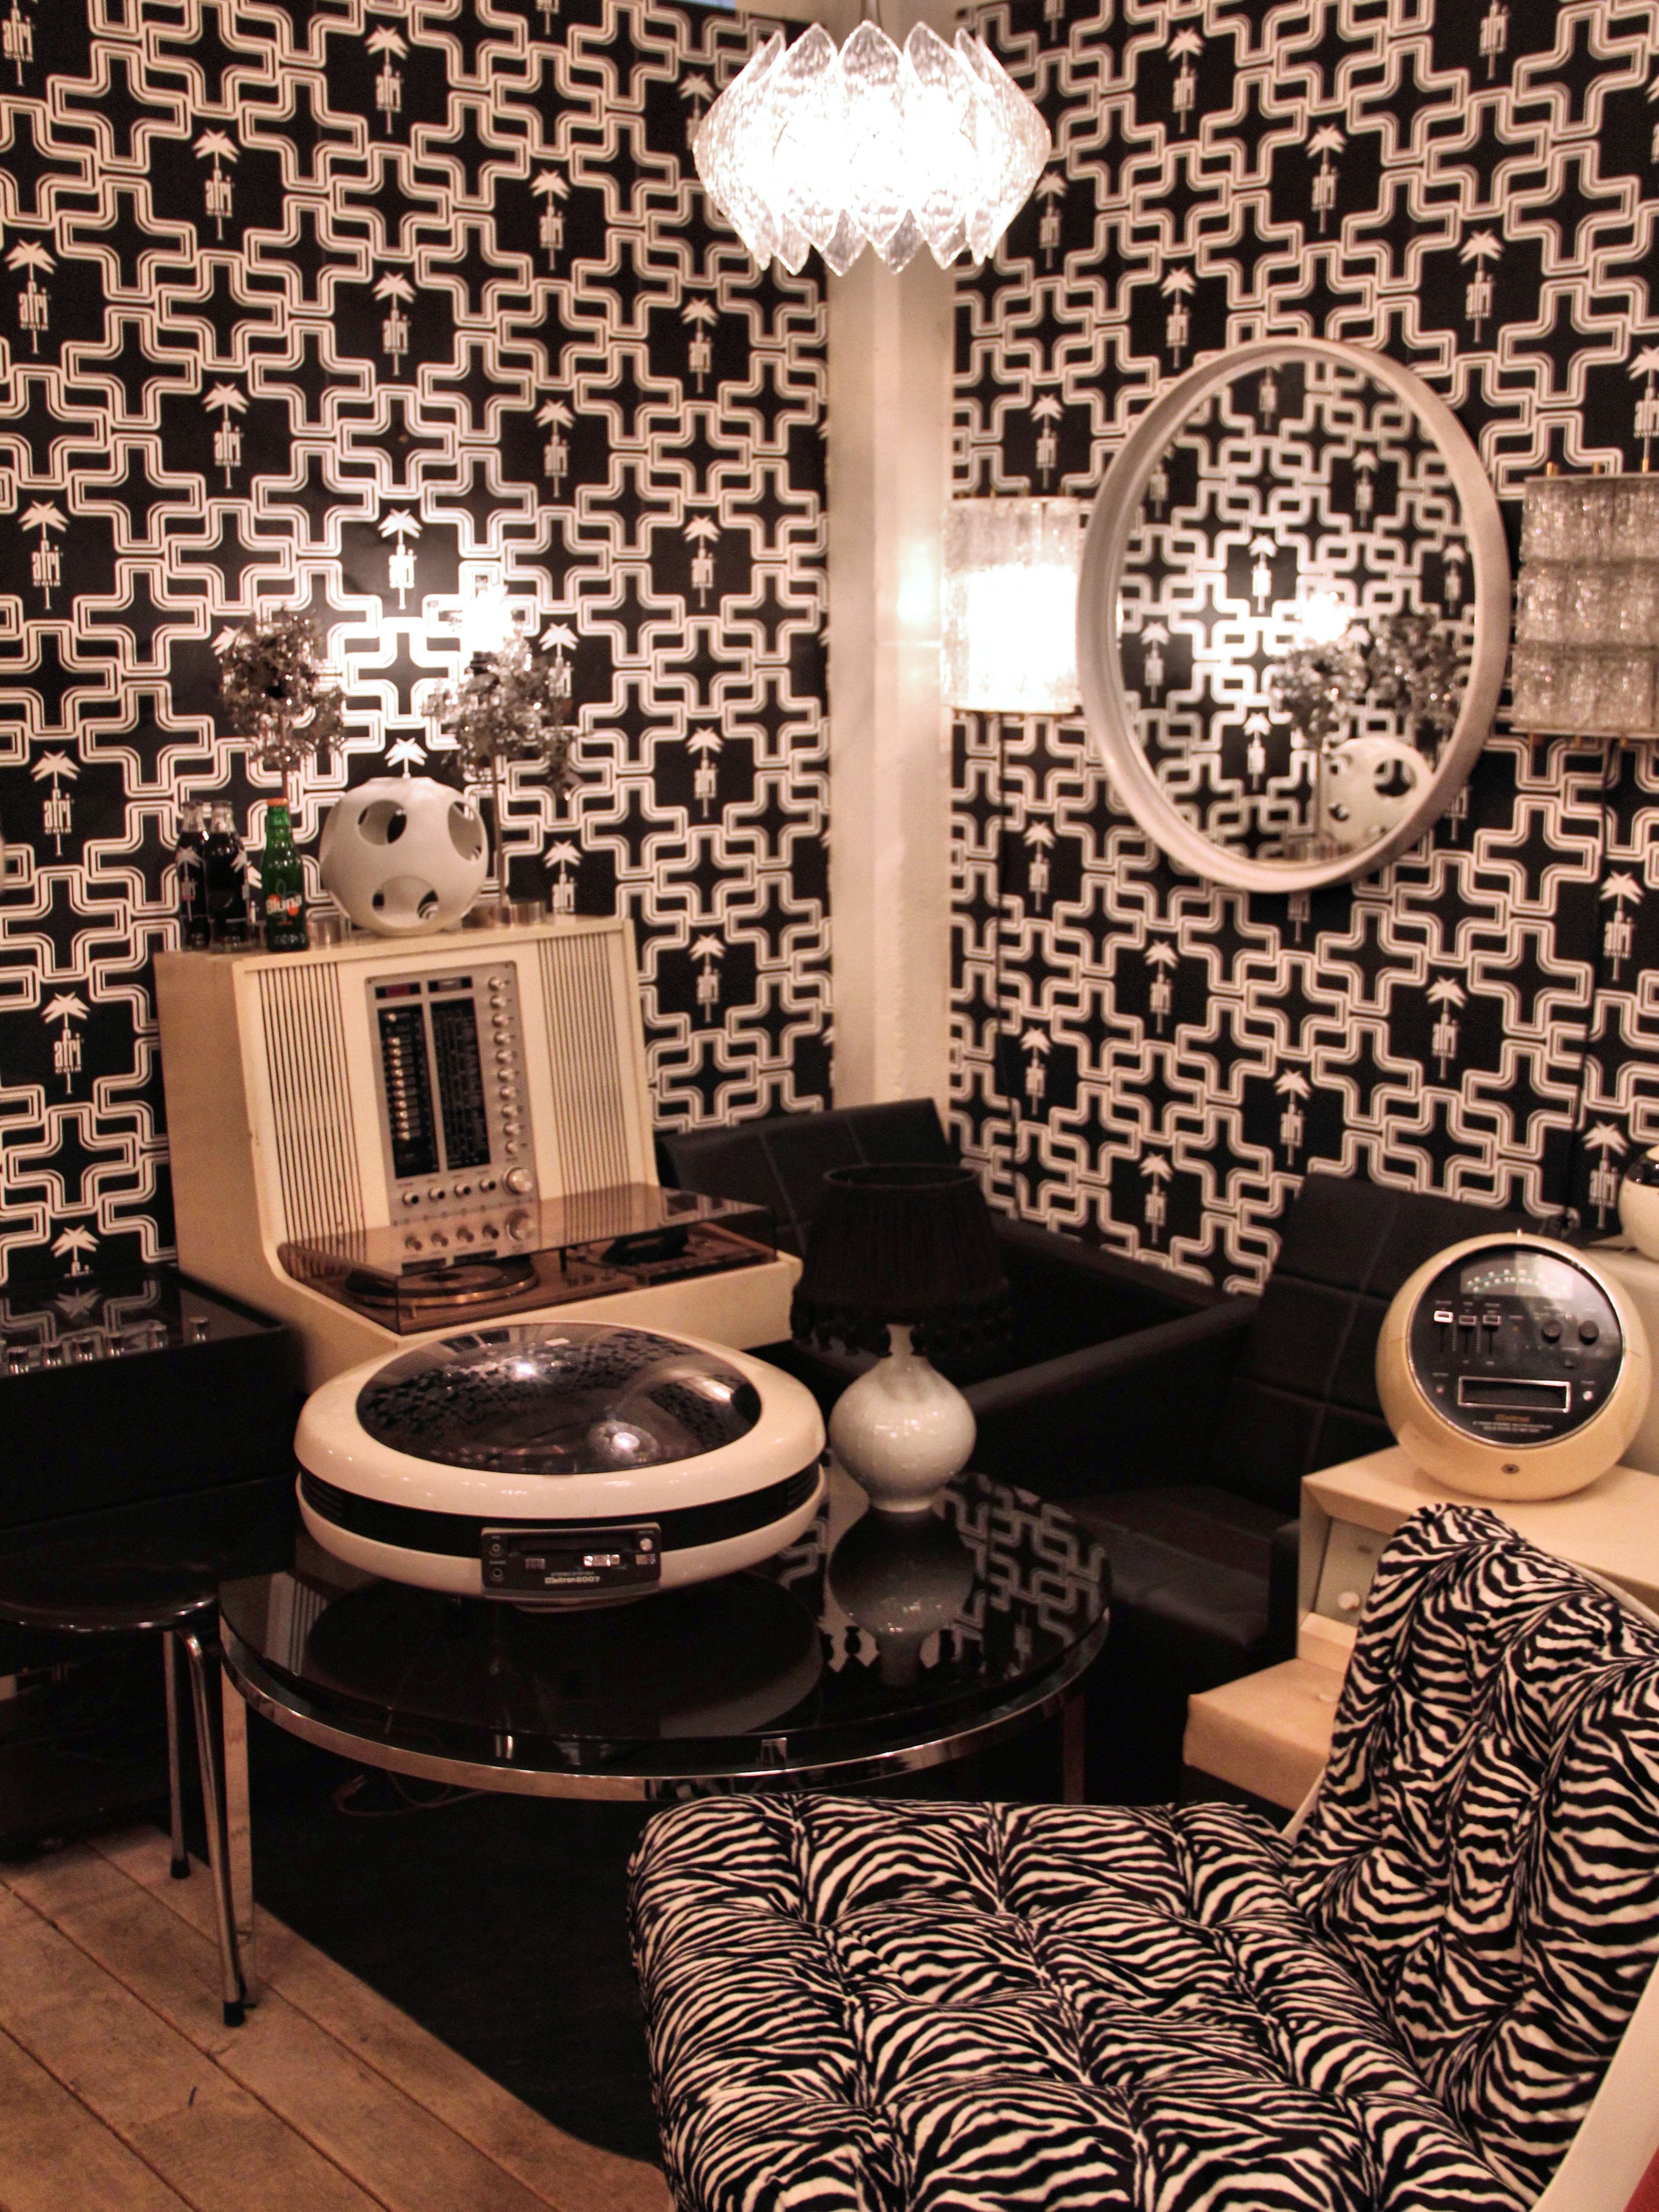 wandel antik galerie 60er jahre wandel antik. Black Bedroom Furniture Sets. Home Design Ideas